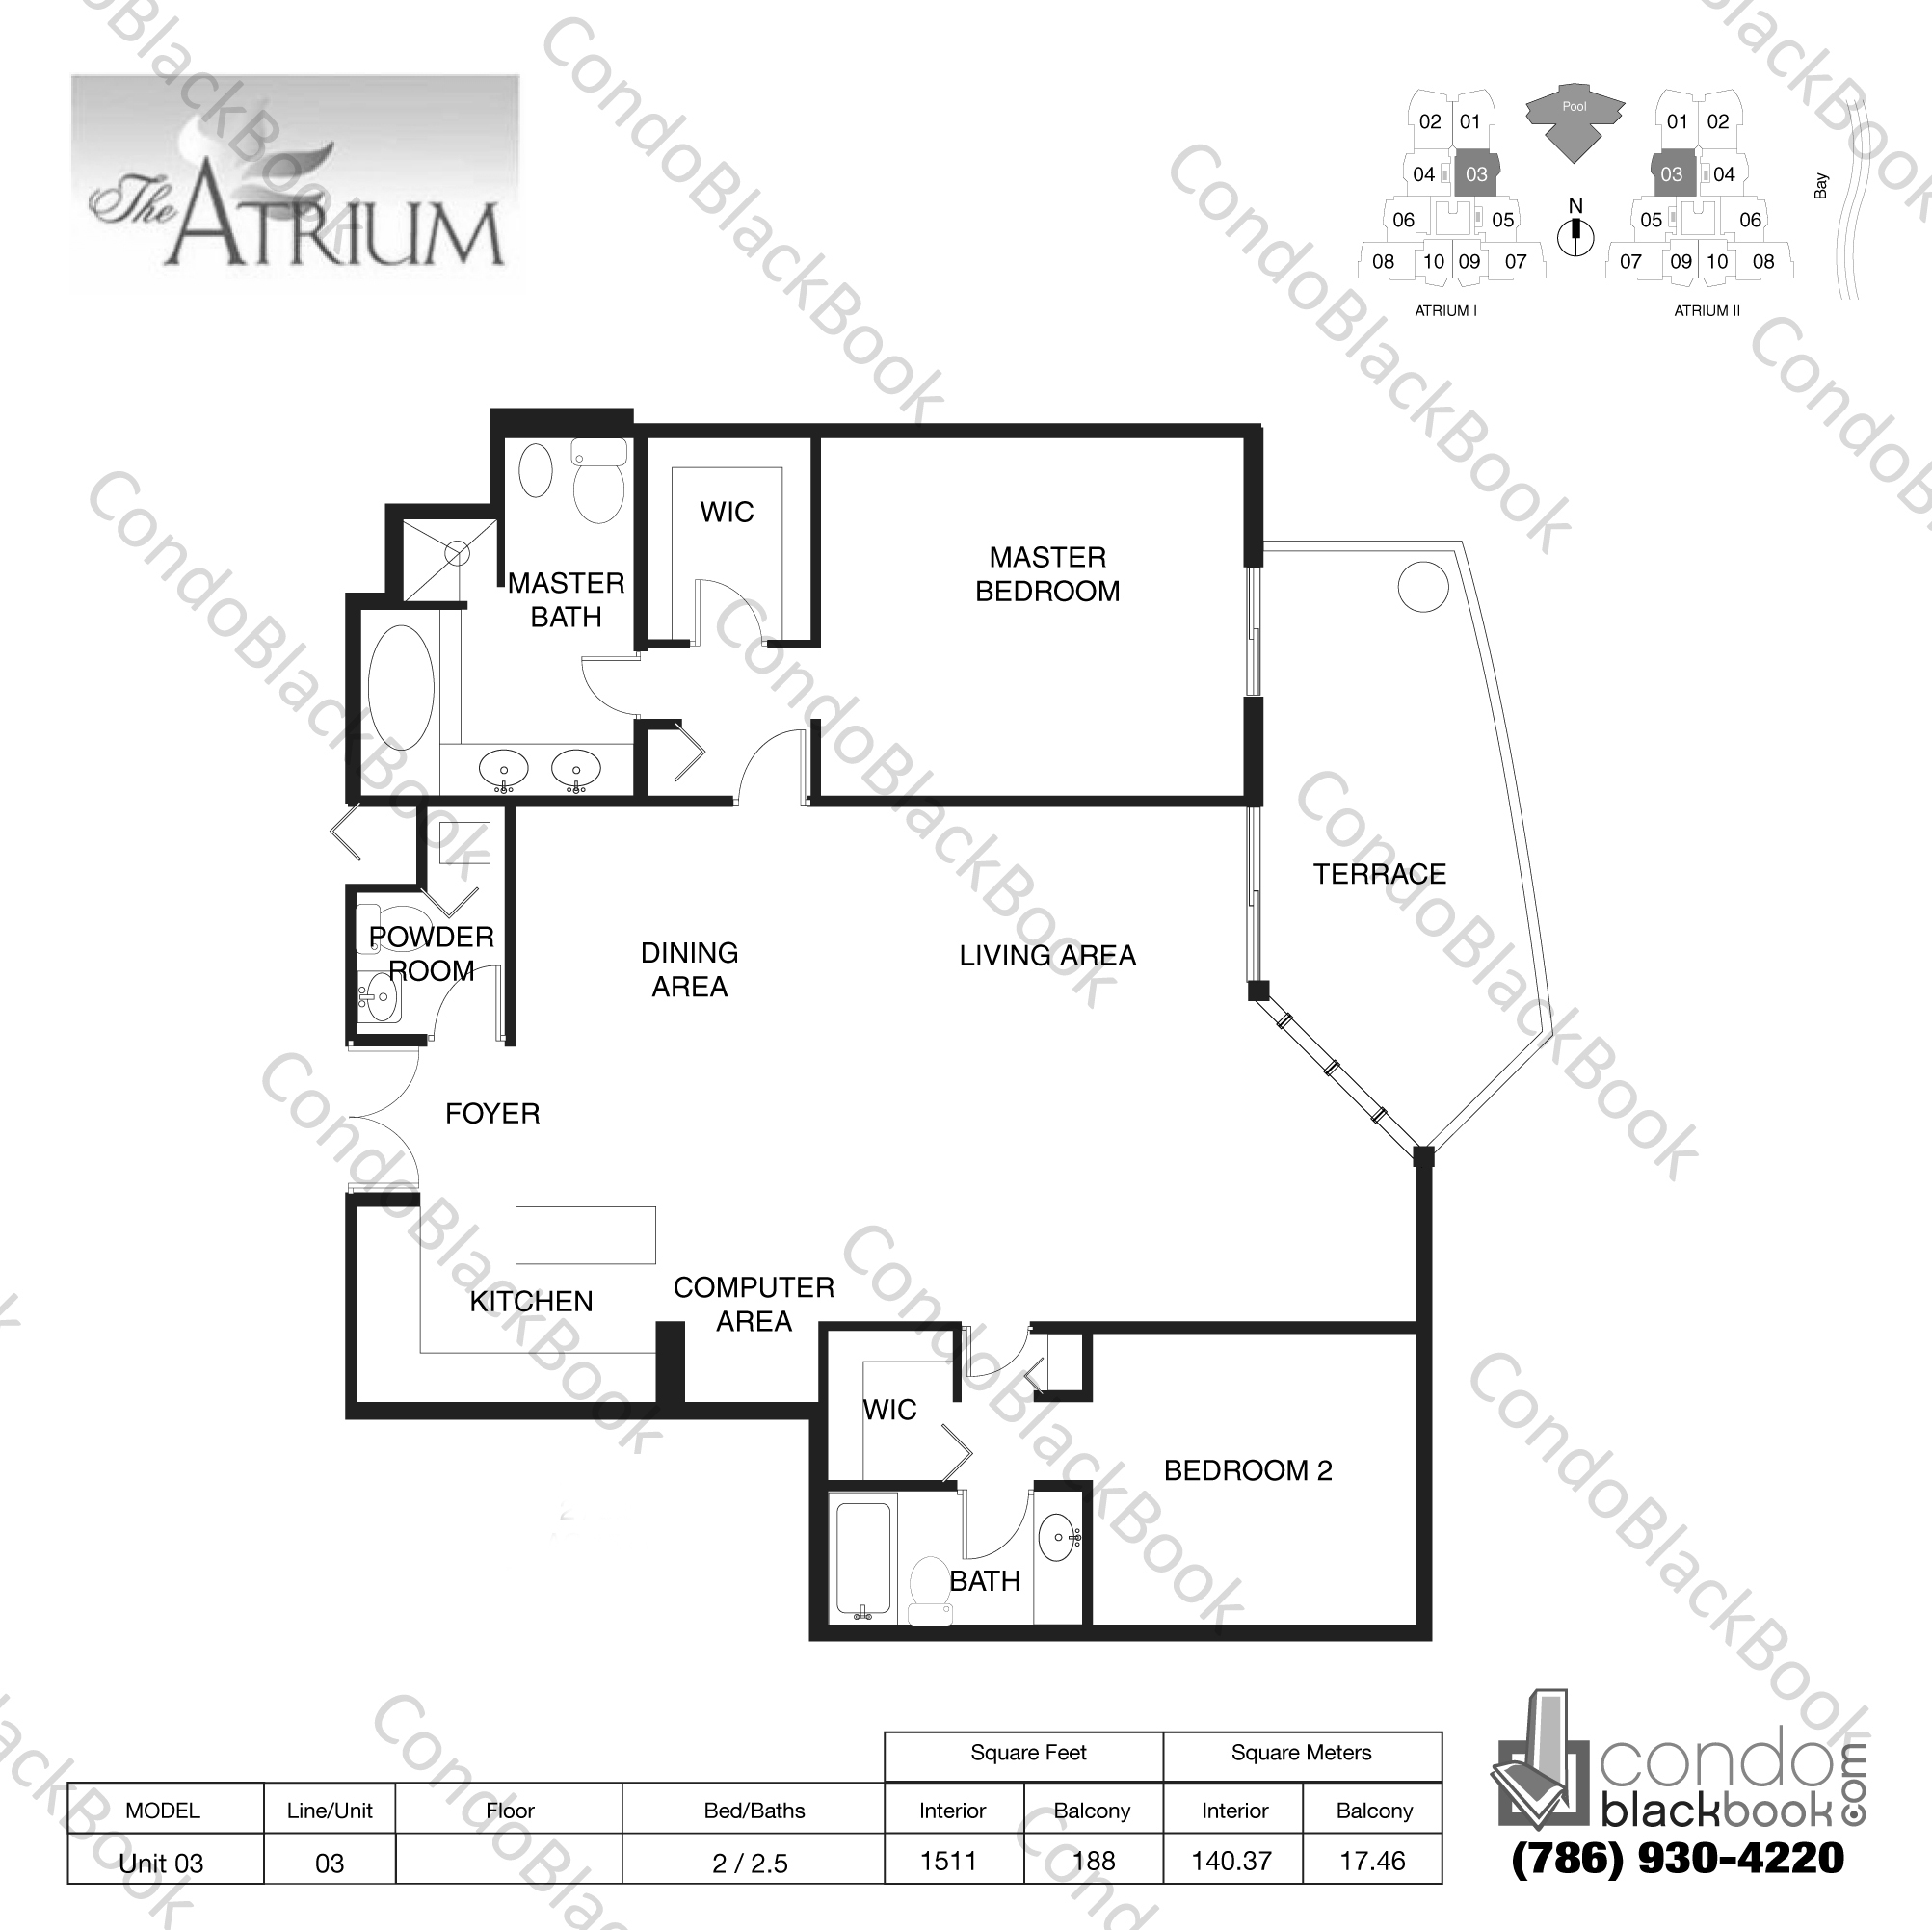 Floor plan for Atrium Aventura, model Unit 03, line 03, 2 / 2.5 bedrooms, 1511 sq ft